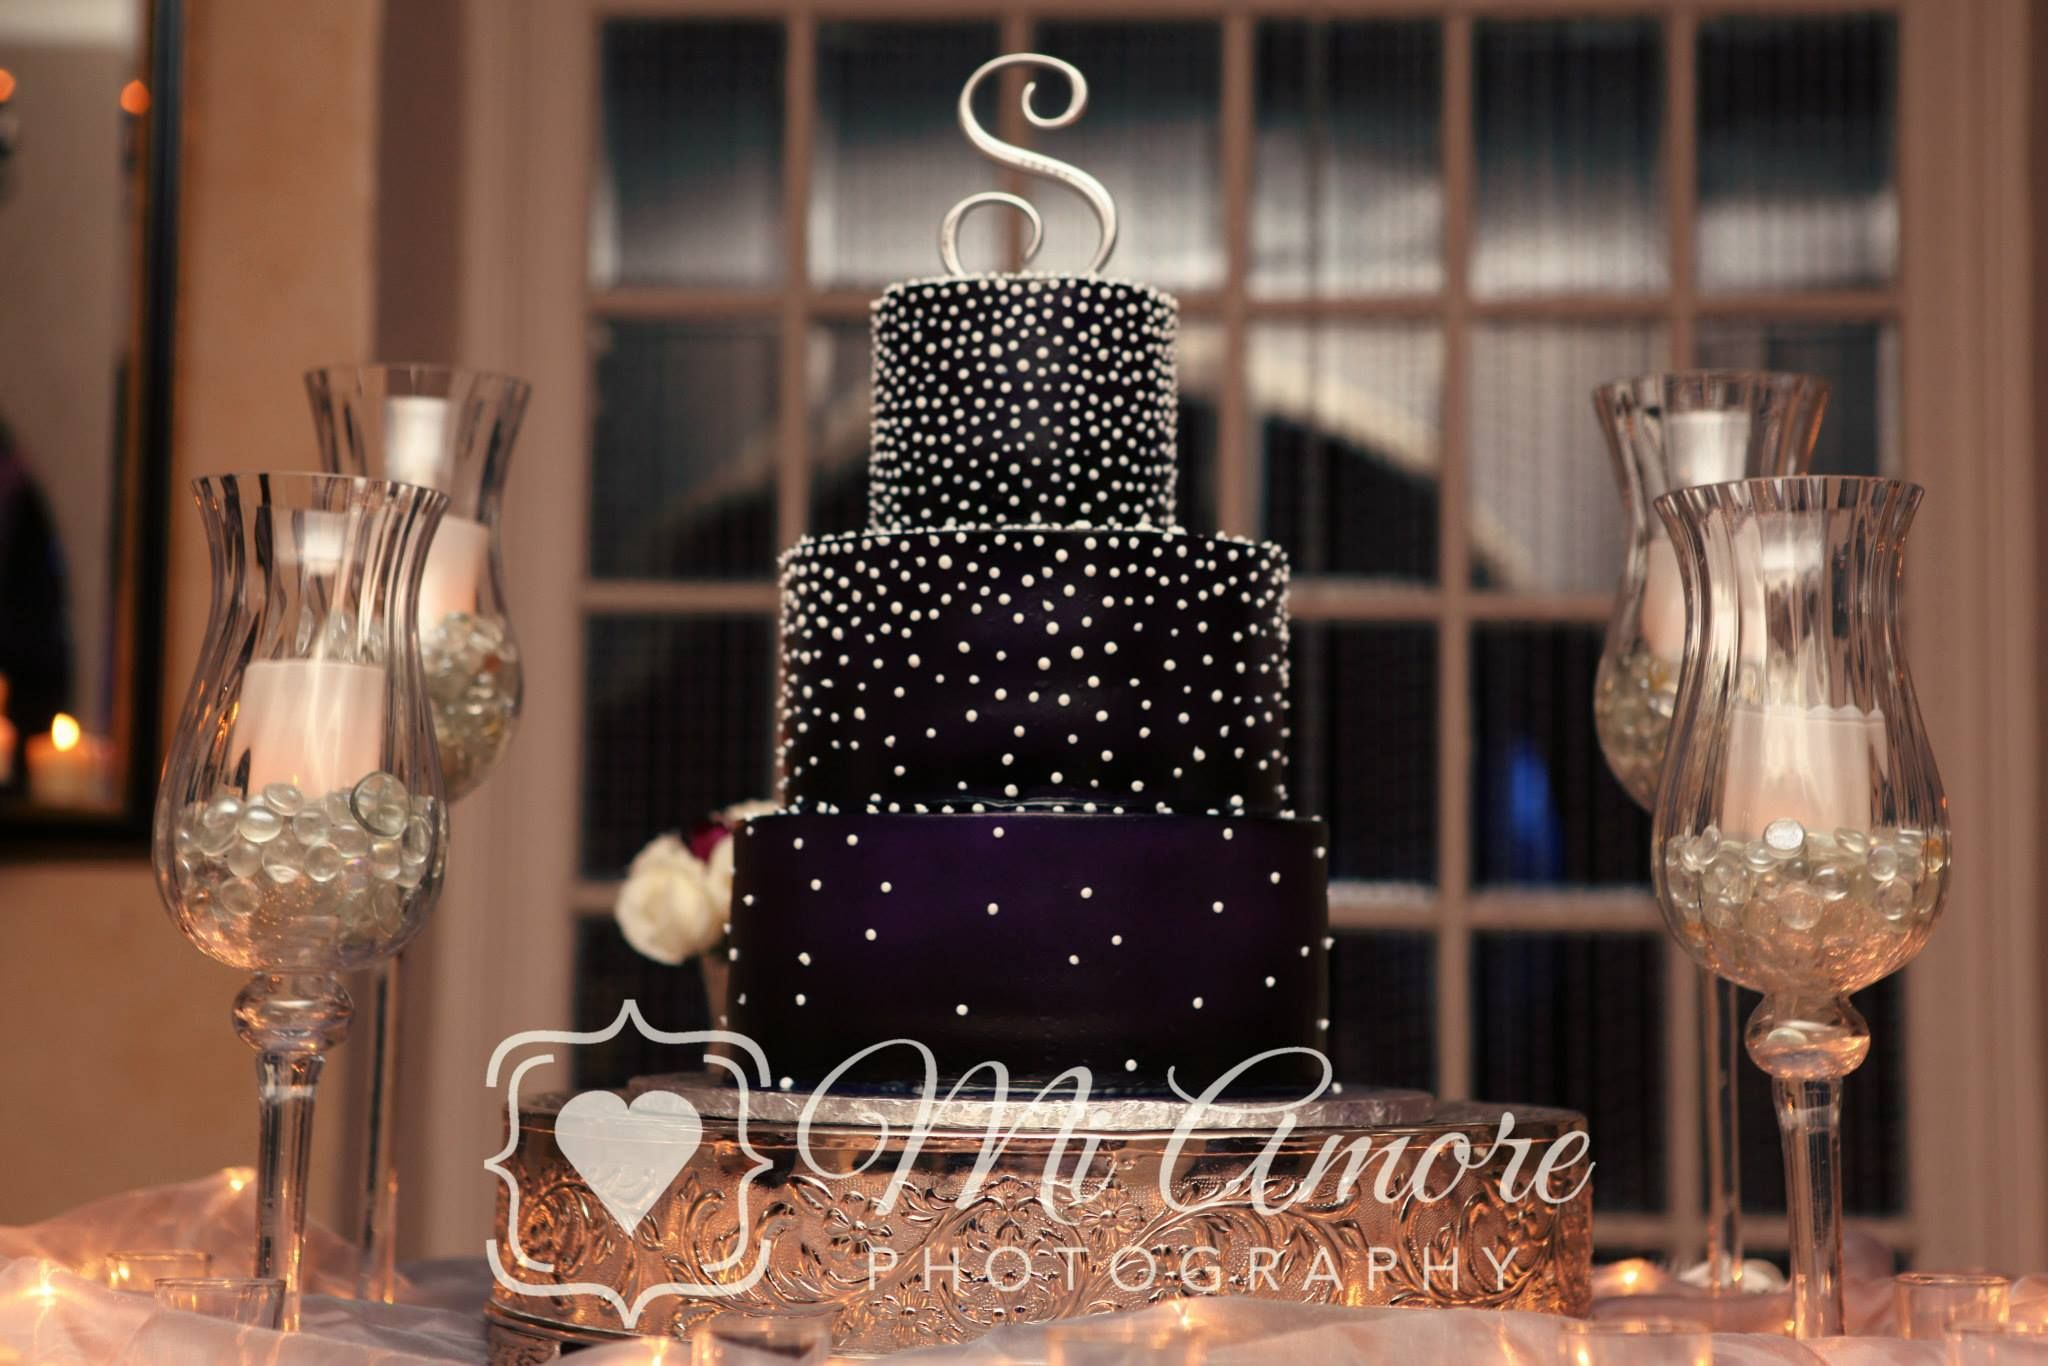 Love the cake stand with the candles on the side and